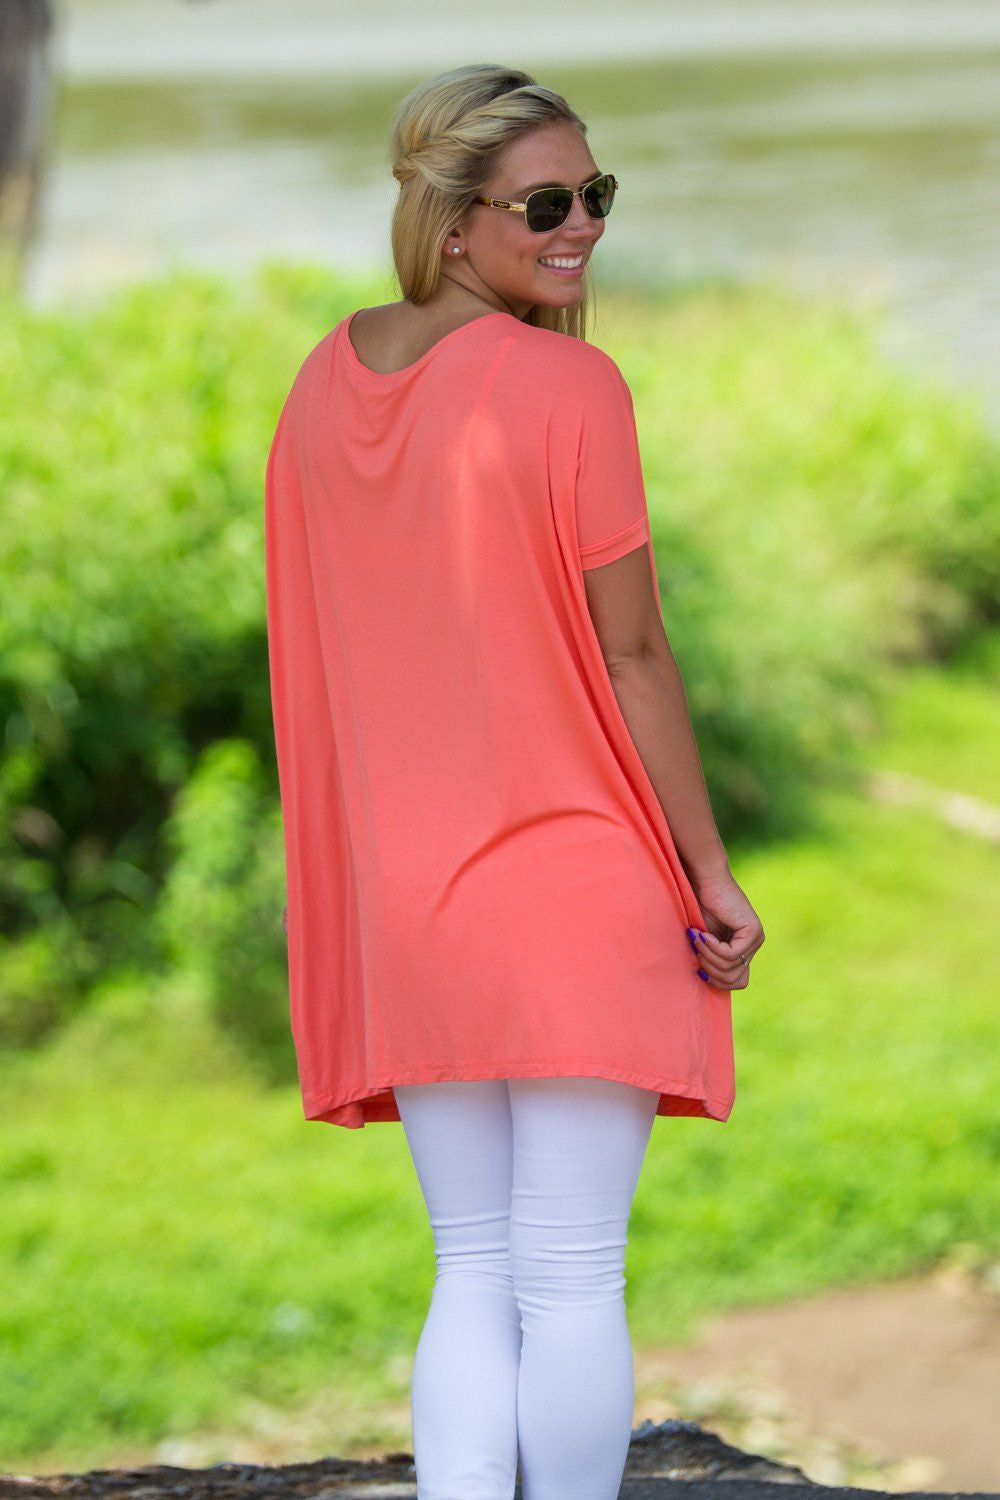 Short Sleeve V-Neck Piko Tunic - Dark Peach - Piko Clothing - 2